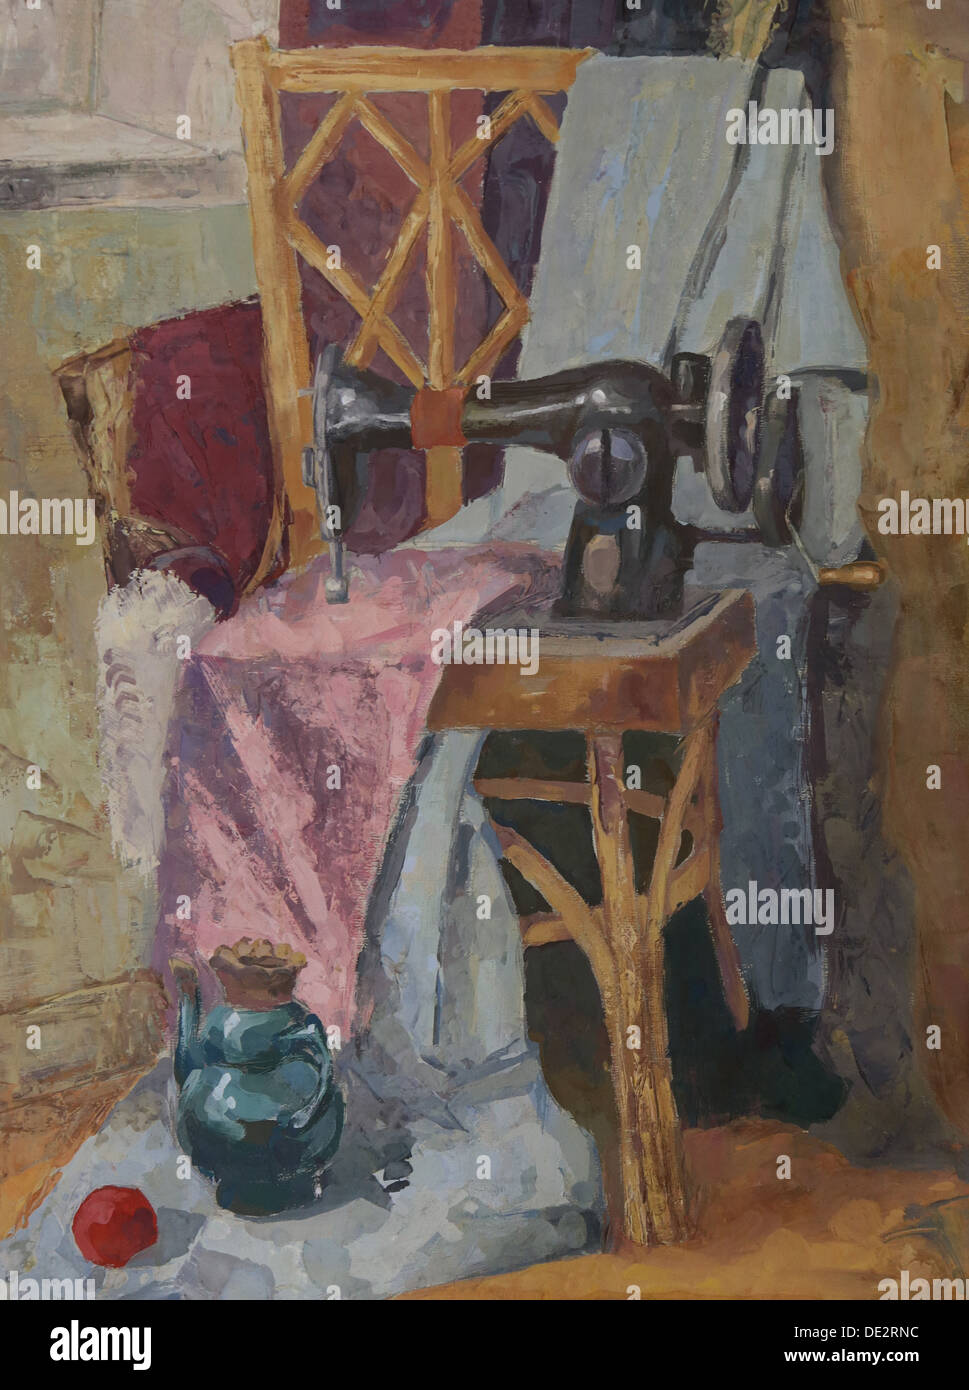 Still life with Antique Sewing Machine. Painting. Gouache on Paper - Stock Image